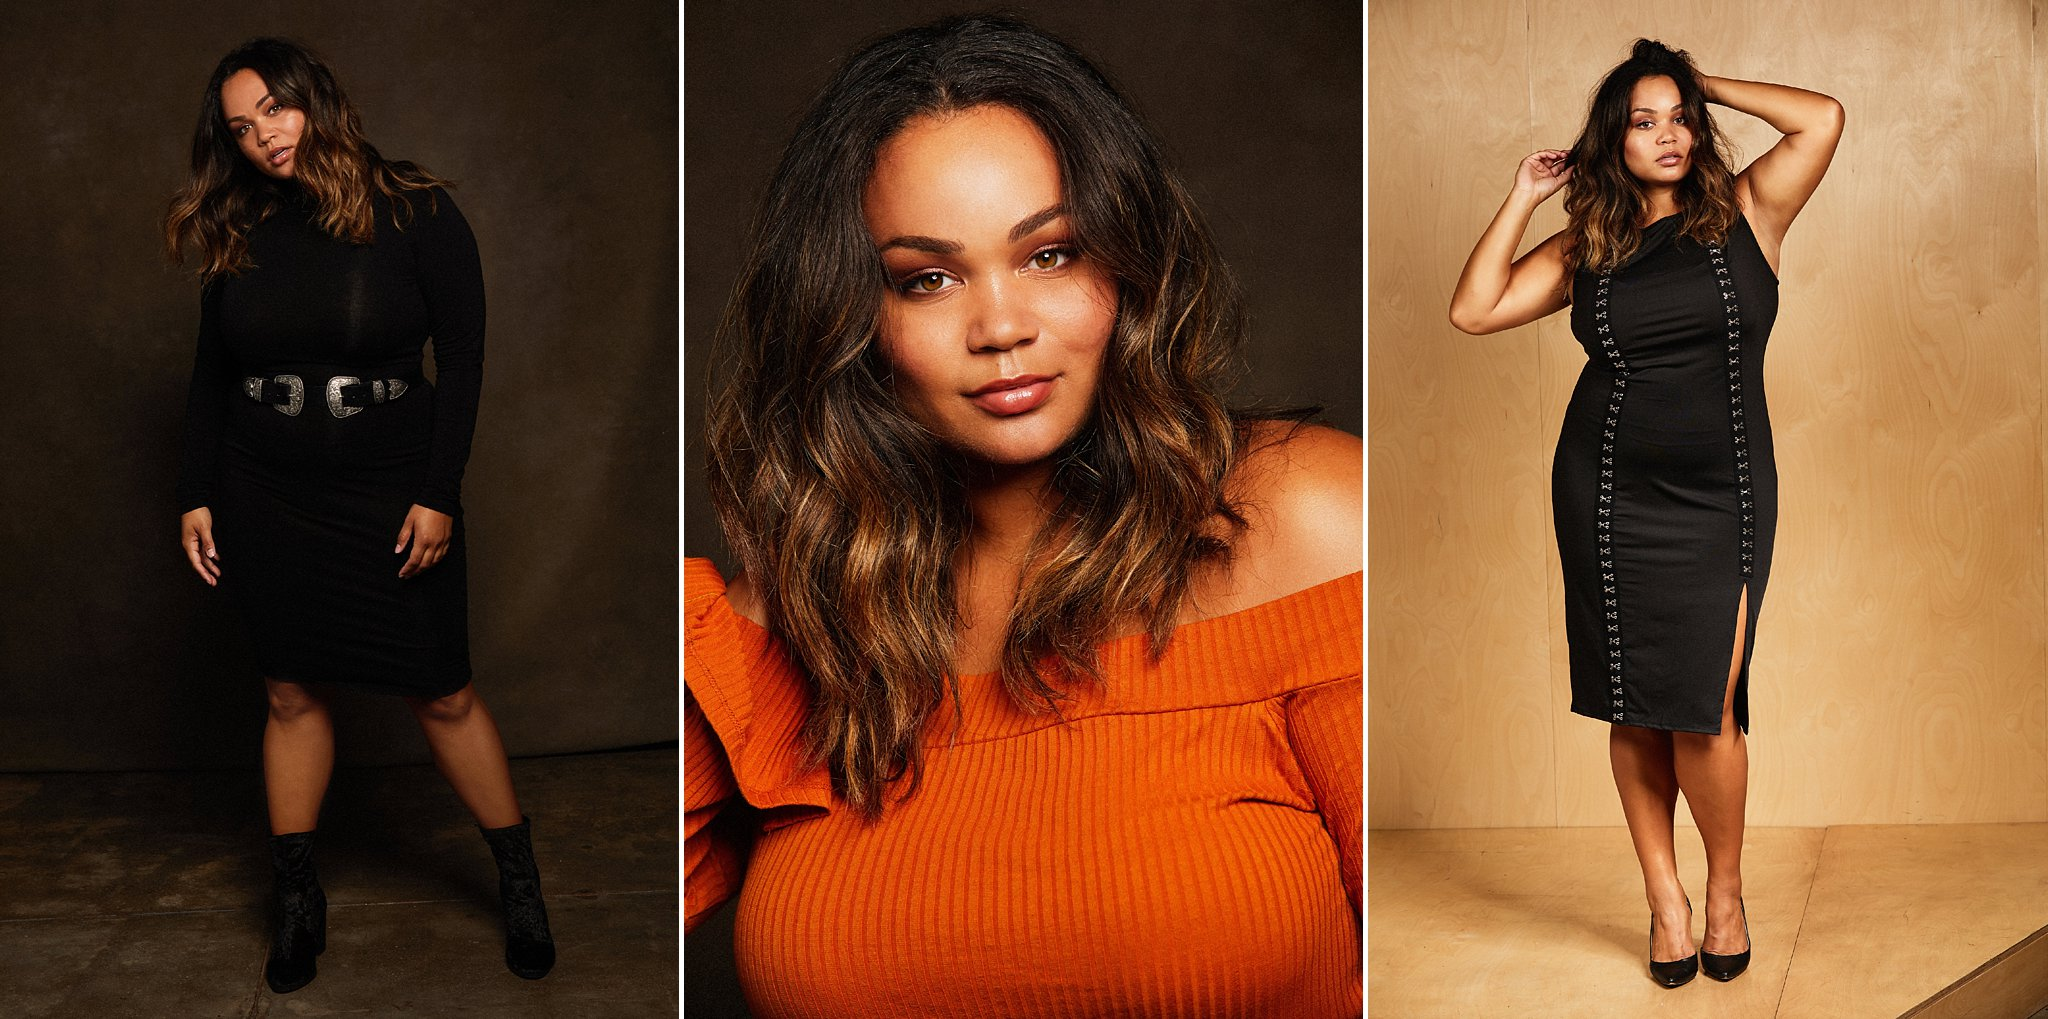 Styling-For-Plus-Size-Photos-Daron.jpg